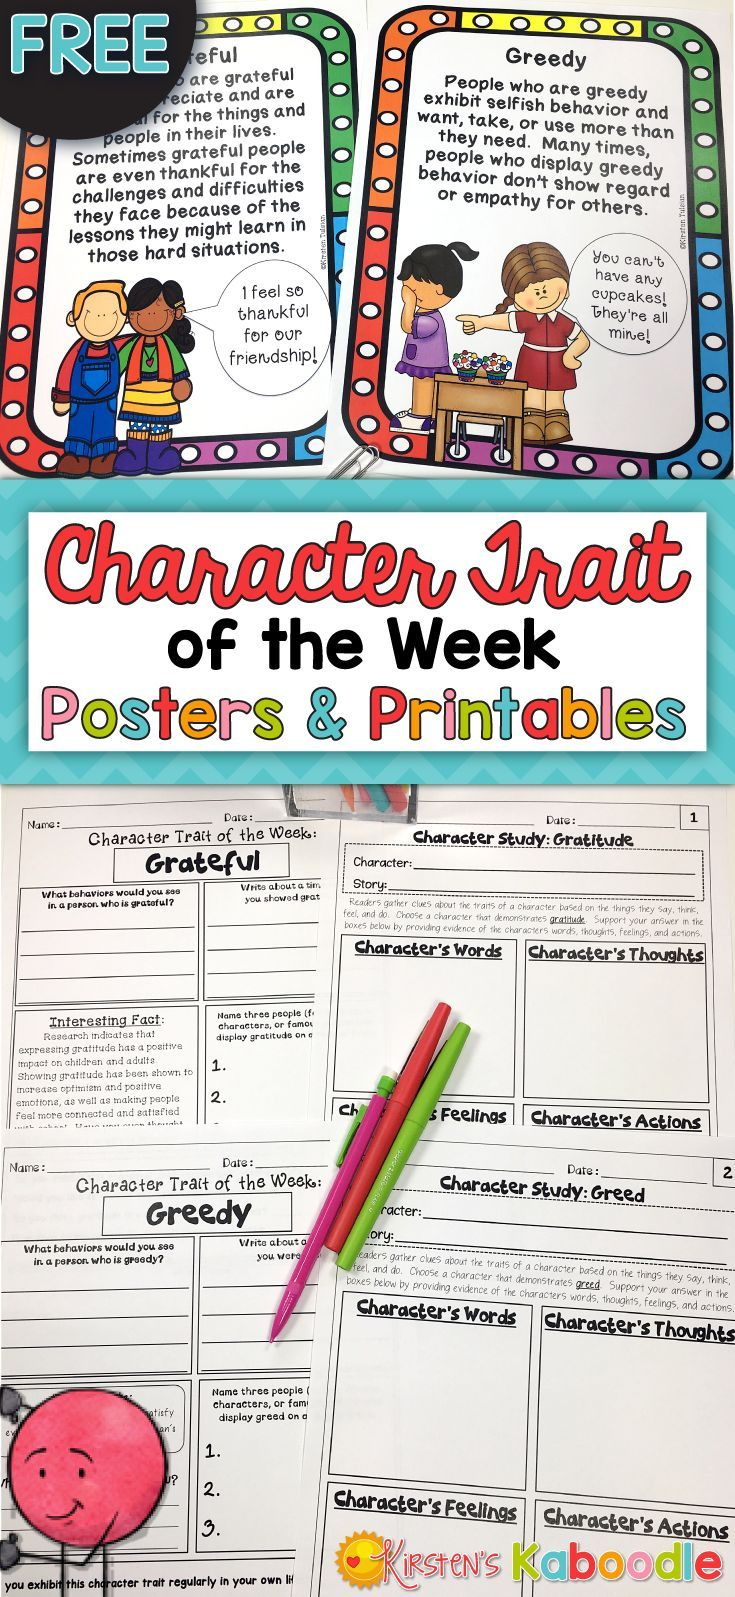 FREE! Are you teaching your students about character traits? These free posters and printables are engaging for your students and allow them to reflect and make connections between themselves, literature, and the world.  Each trait of the week has two printable worksheets that can be copied front to back.  Even better.... they are FREE! Enjoy!